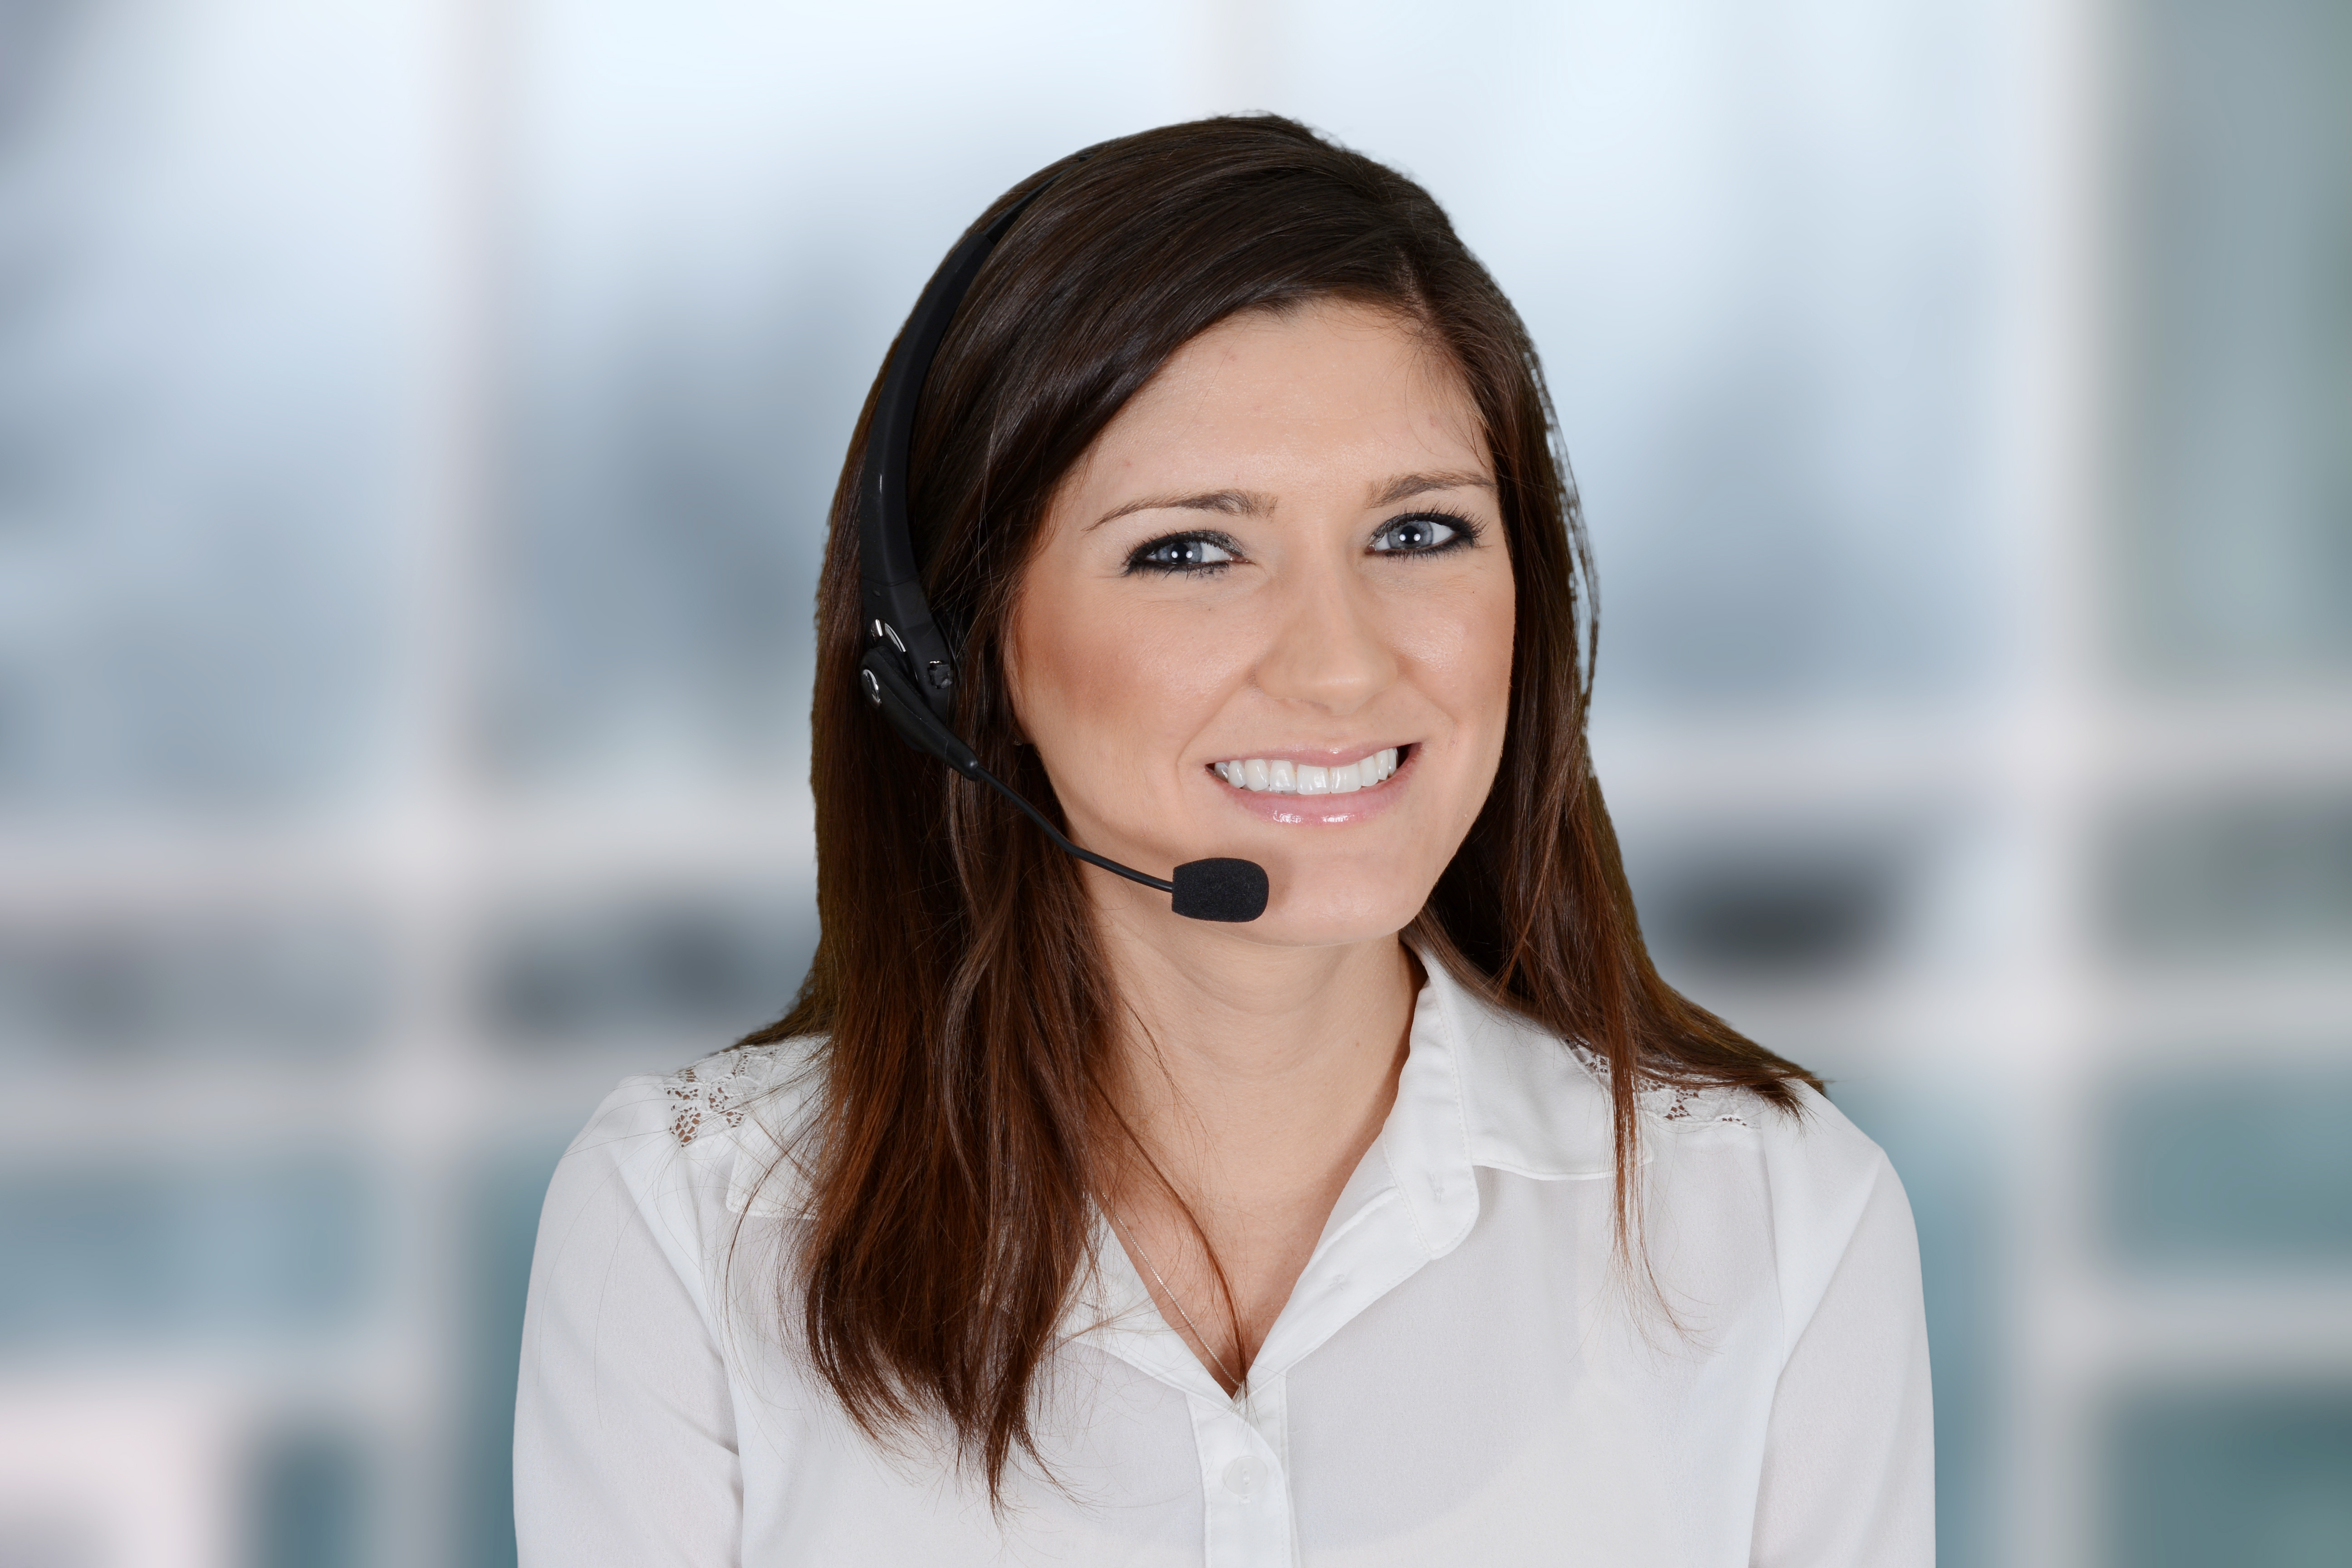 Woman with headset preparing for online meeting